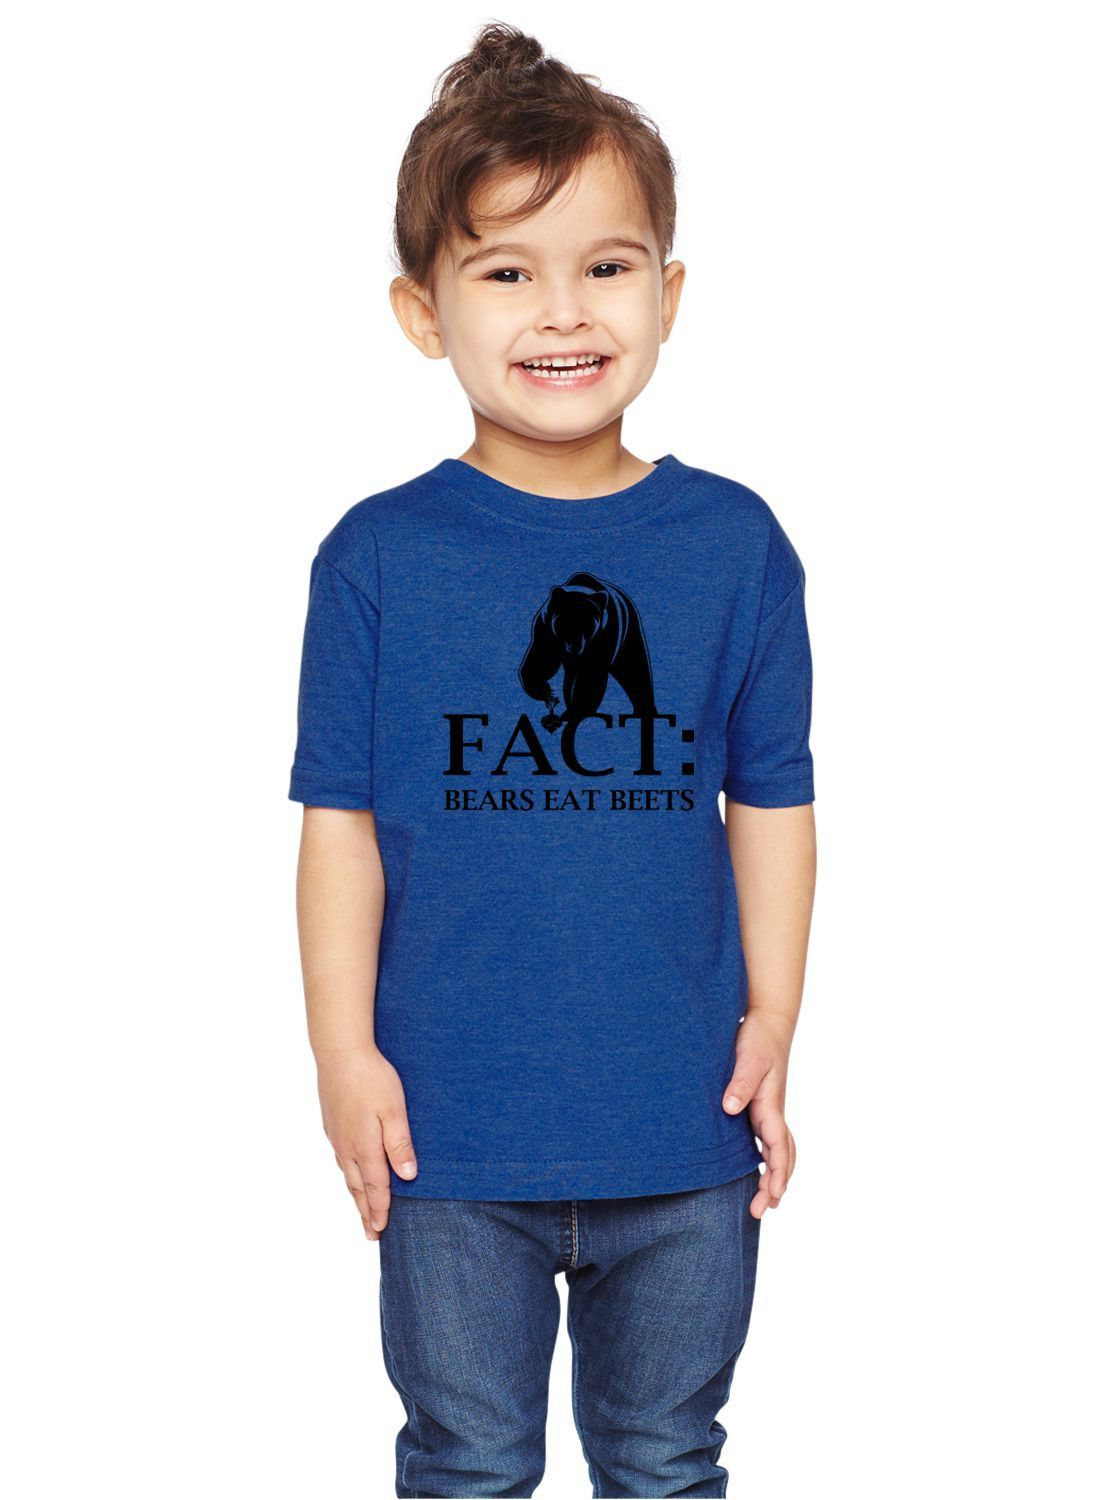 666f18fca20865 Fact  Bears Eat Beets Dwight Schrute Unisex Toddler Shirt